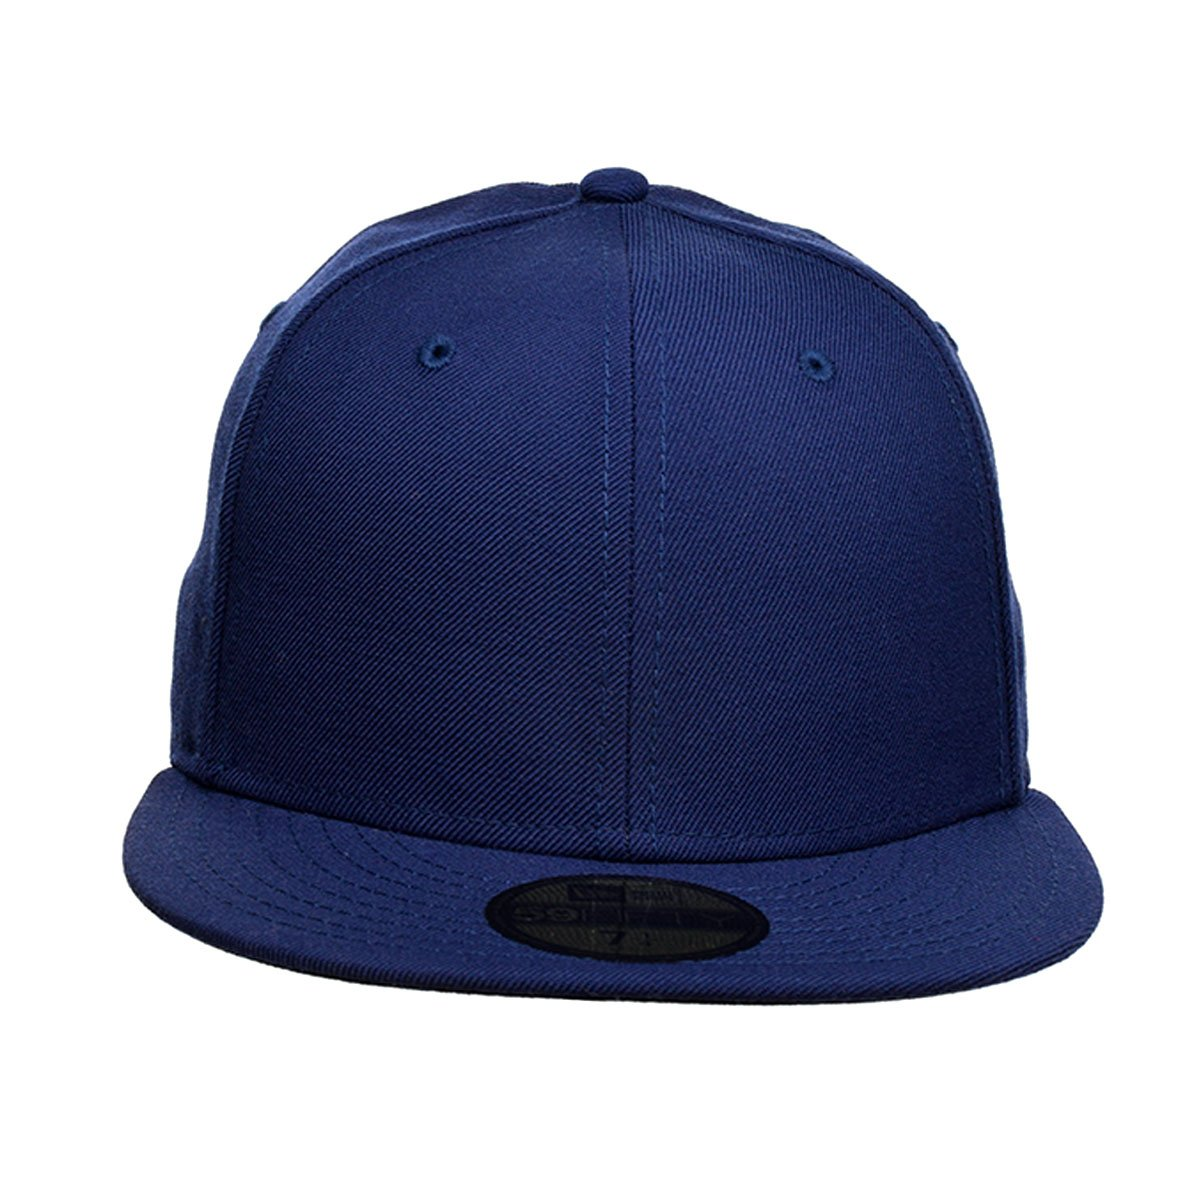 Amazon.com   New Era Blank 59Fifty Fitted Hat (Royal)   Sports   Outdoors cc4d5e4c2d83